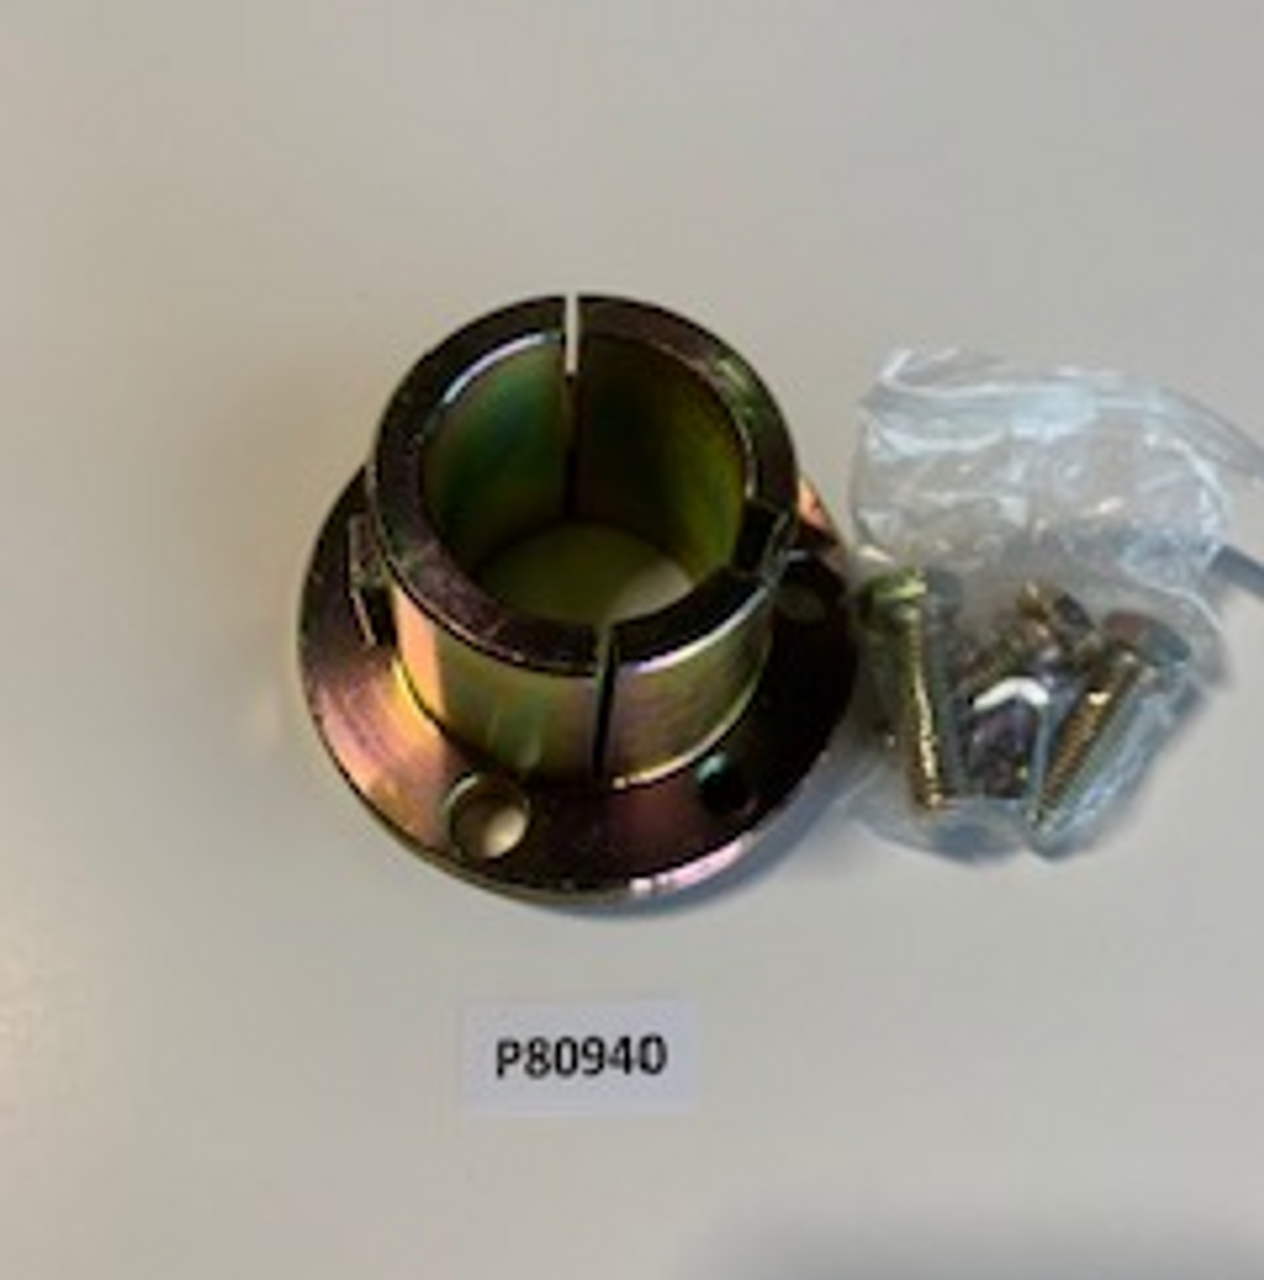 Bushing Pulley P1 X 1.38, Aaon, P80940